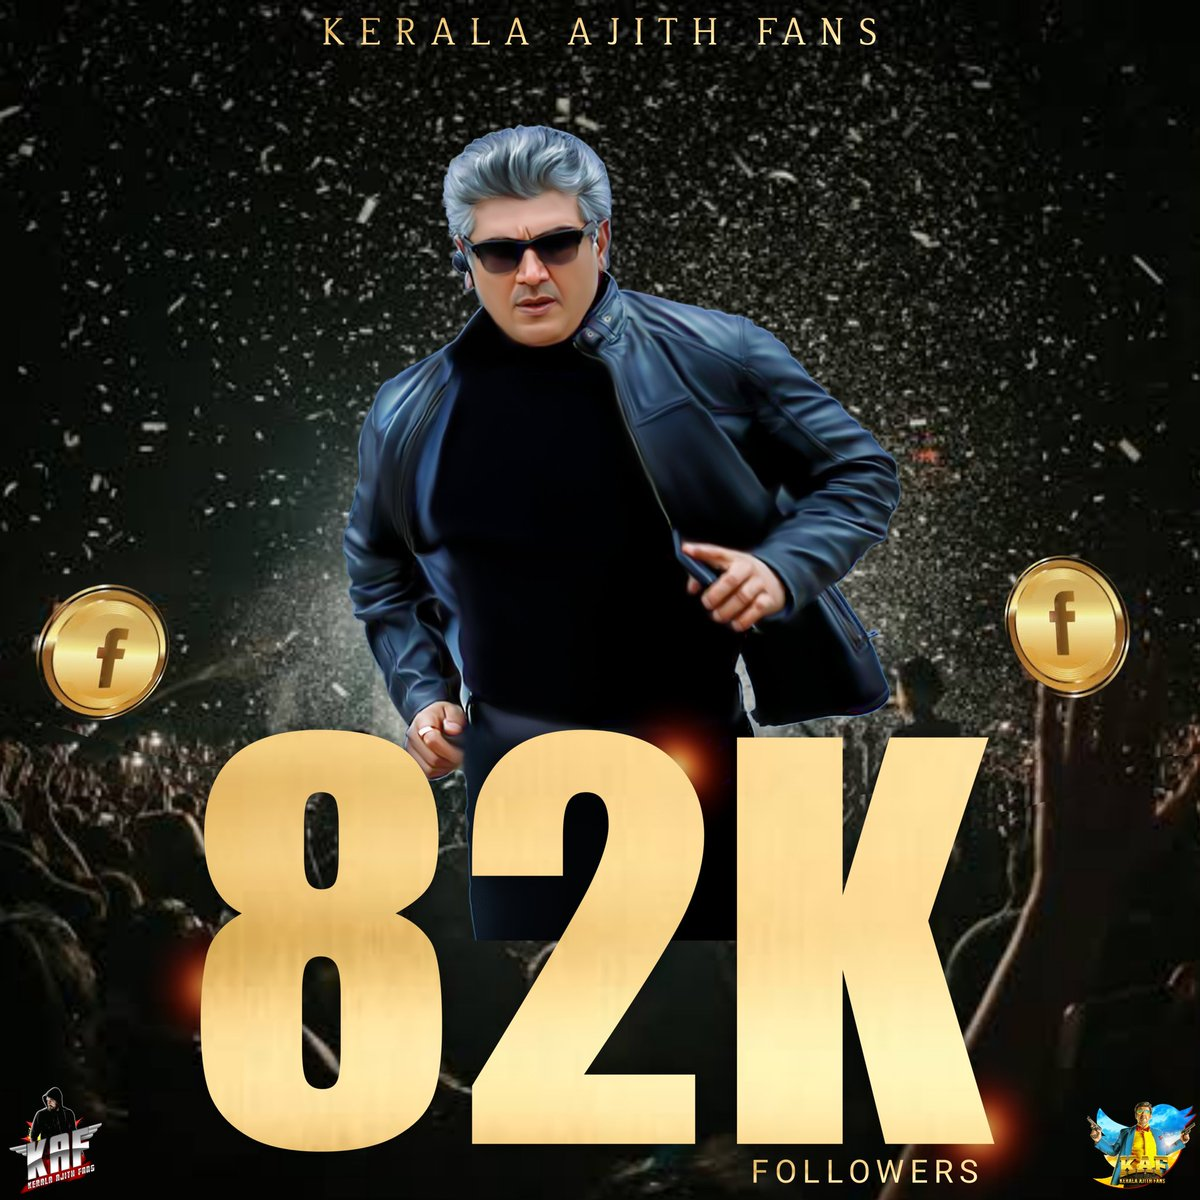 Successfully our Kerala Ajith Fans State Committee Facebook Page reached 82K Followers Today 🎉💥  Thanks for the Support and Keep Supporting us the same way that u guys done before  Thank You Everyone 🙏🏻🙏🏻  #150DToTHALABDayCarnival #Valimai